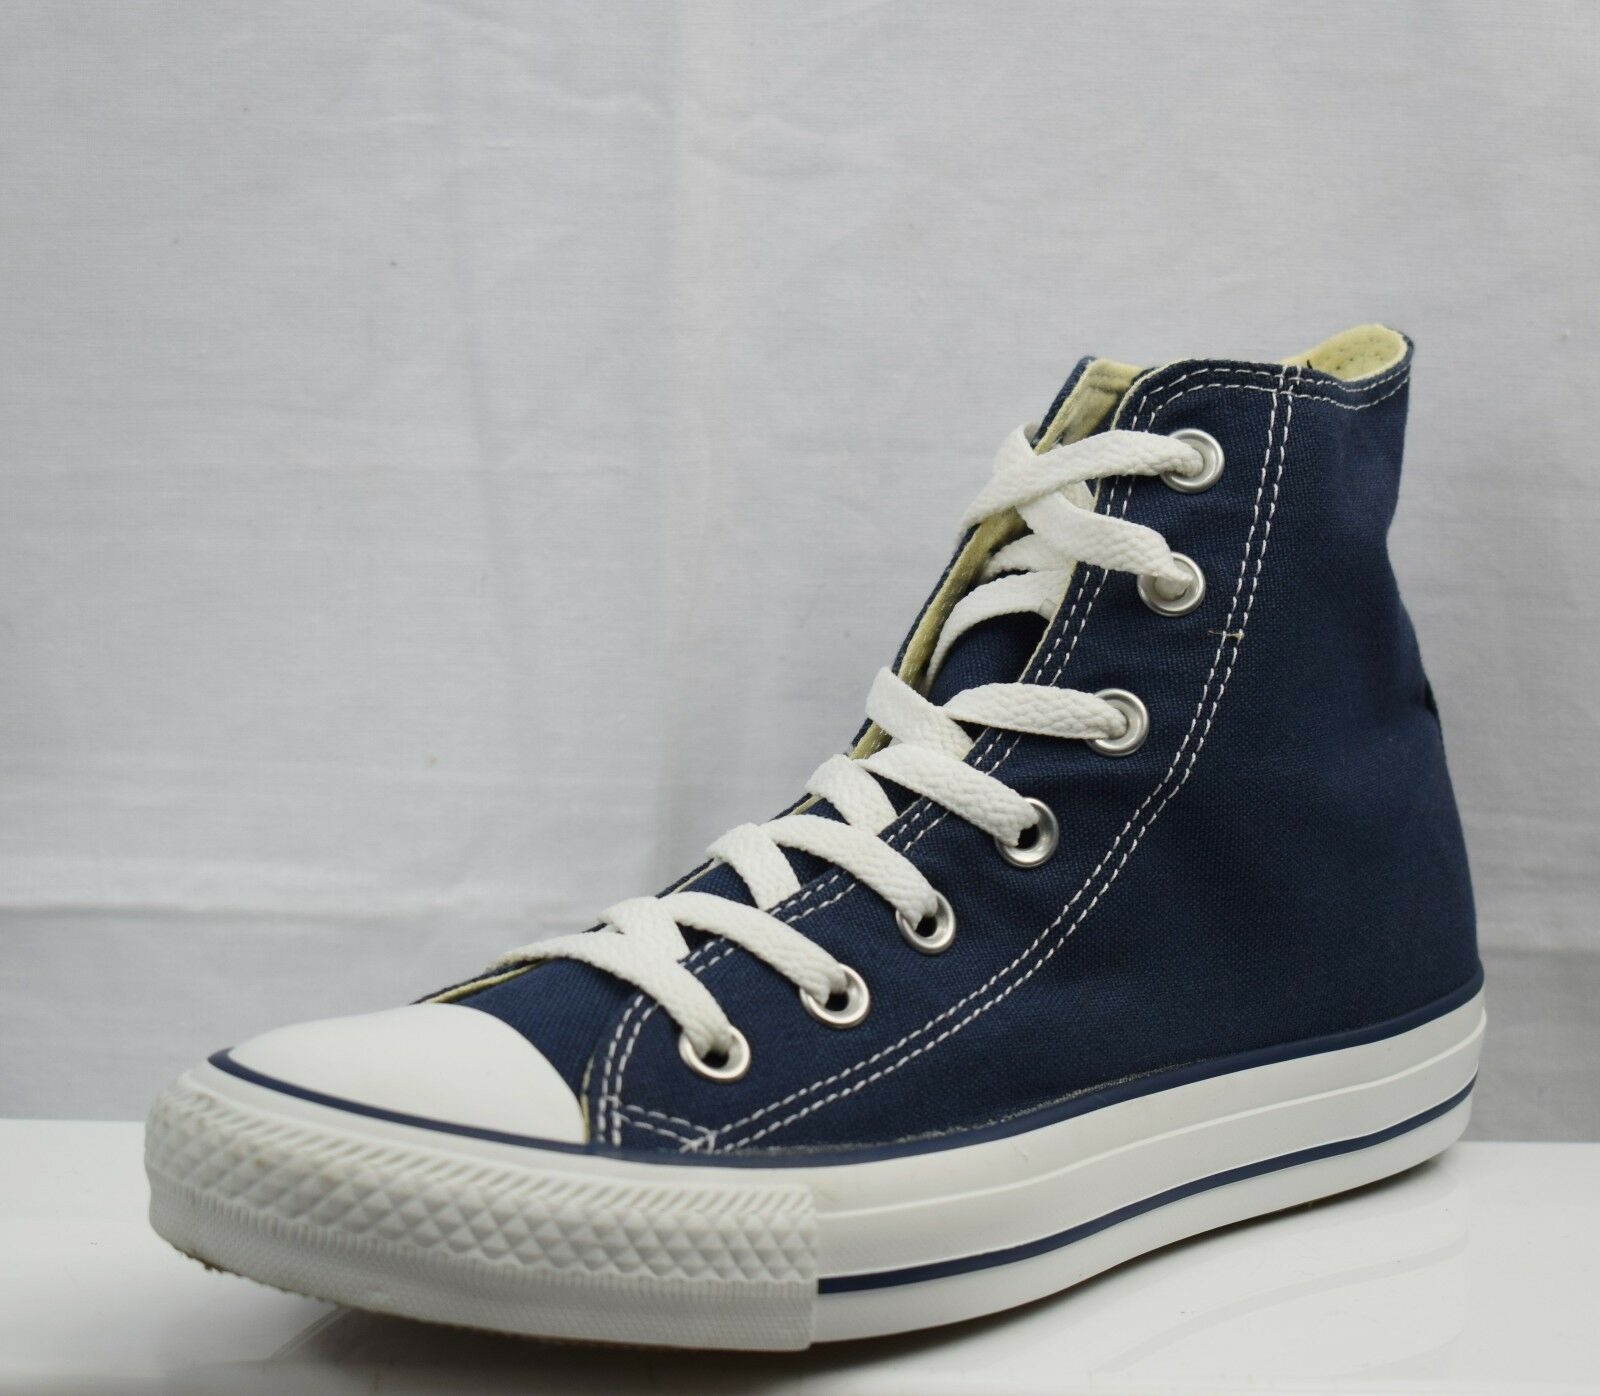 Converse All Star HI Baskets Neuf Taille UK 5 (H16)